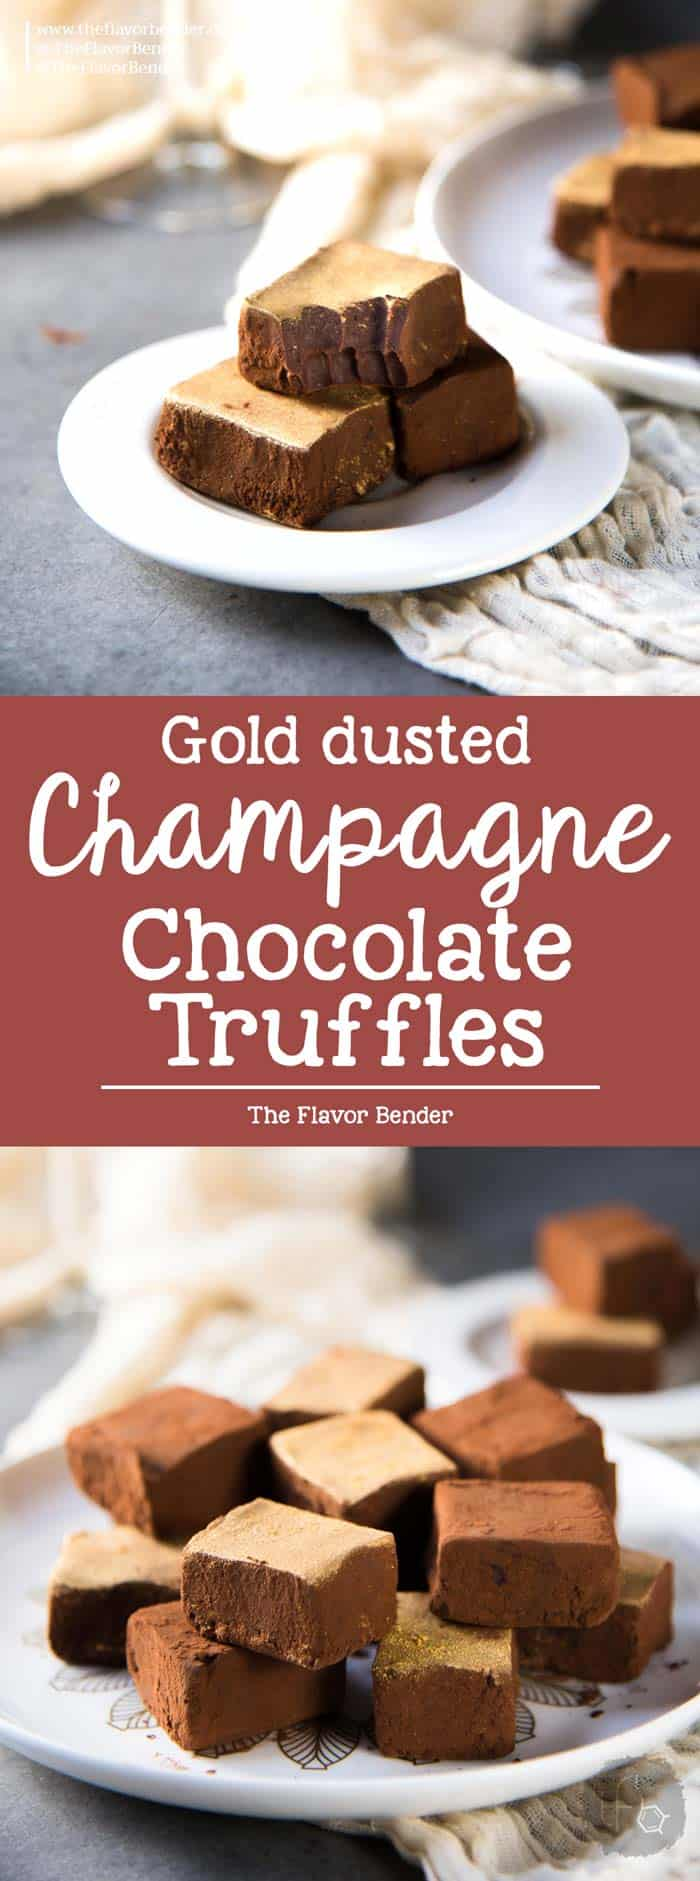 Chocolate Champagne Truffles - melt in your mouth soft, velvety, decadent, fruity truffles that is easy and less messy to make. Dusted with cocoa powder and gold luster dust. Perfect for celebrations.